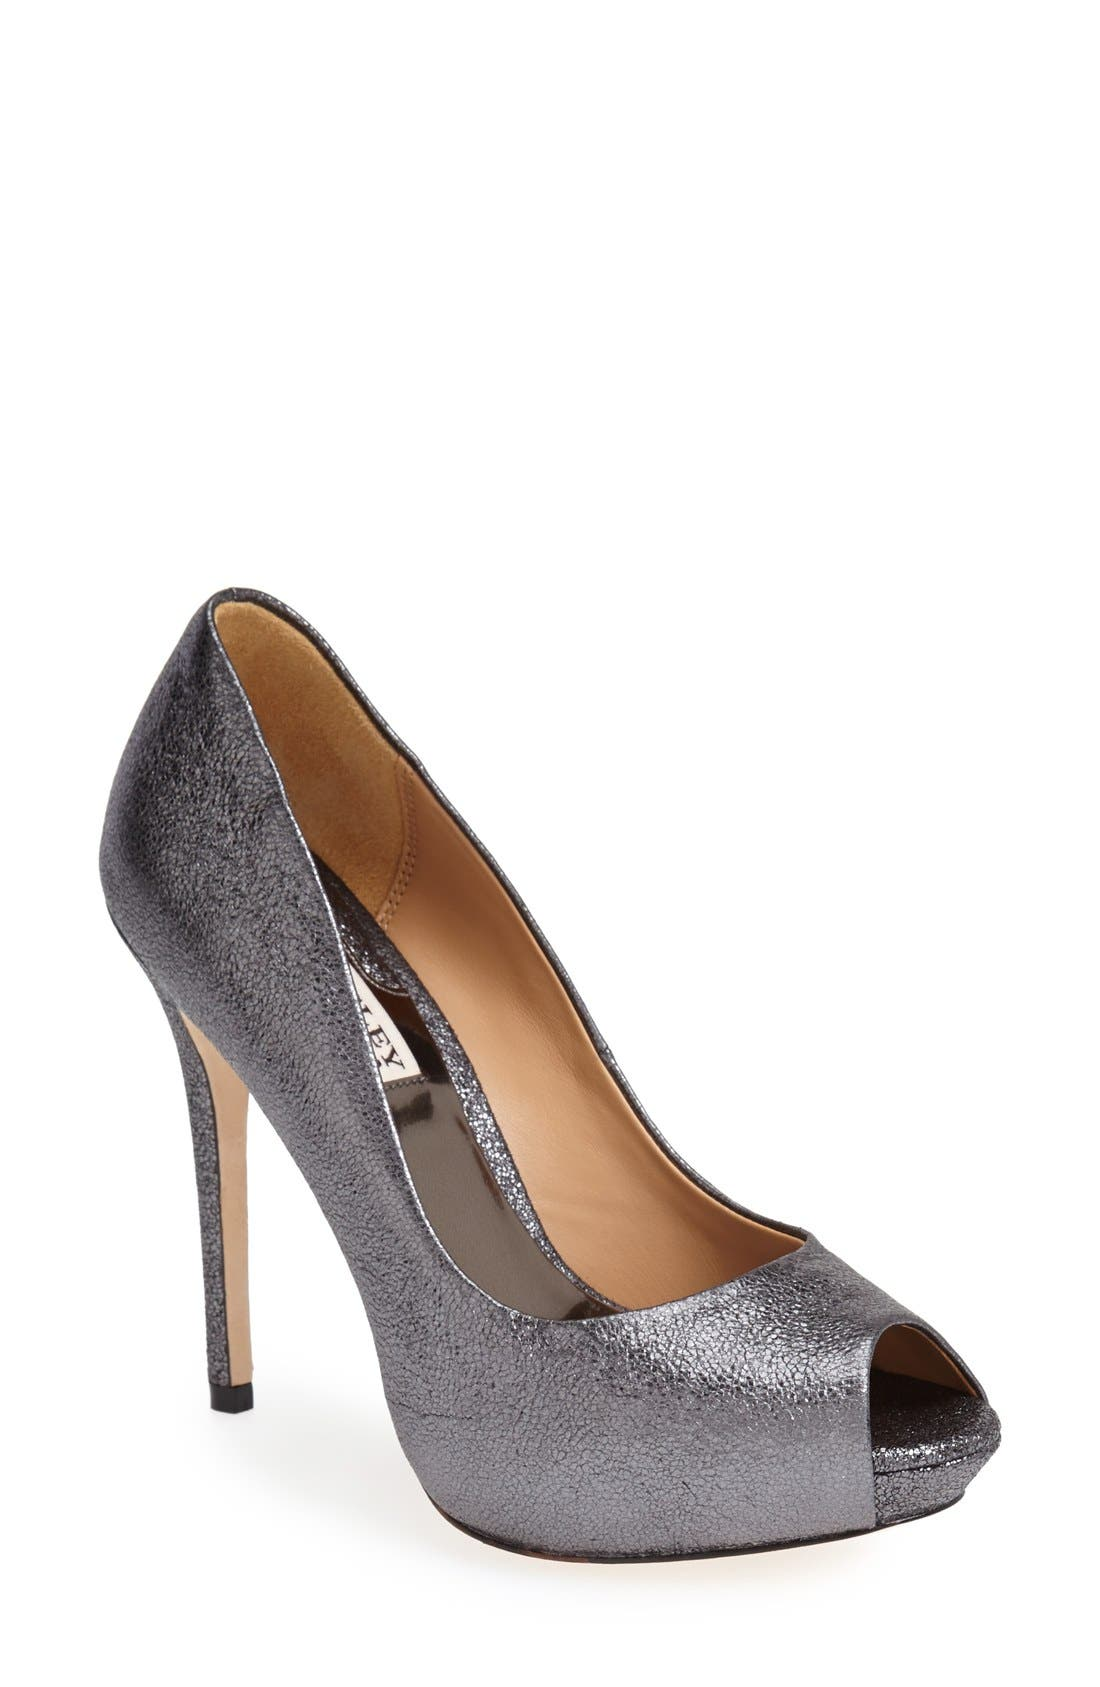 Main Image - Badgley Mischka 'Lust II' Pump (Women)